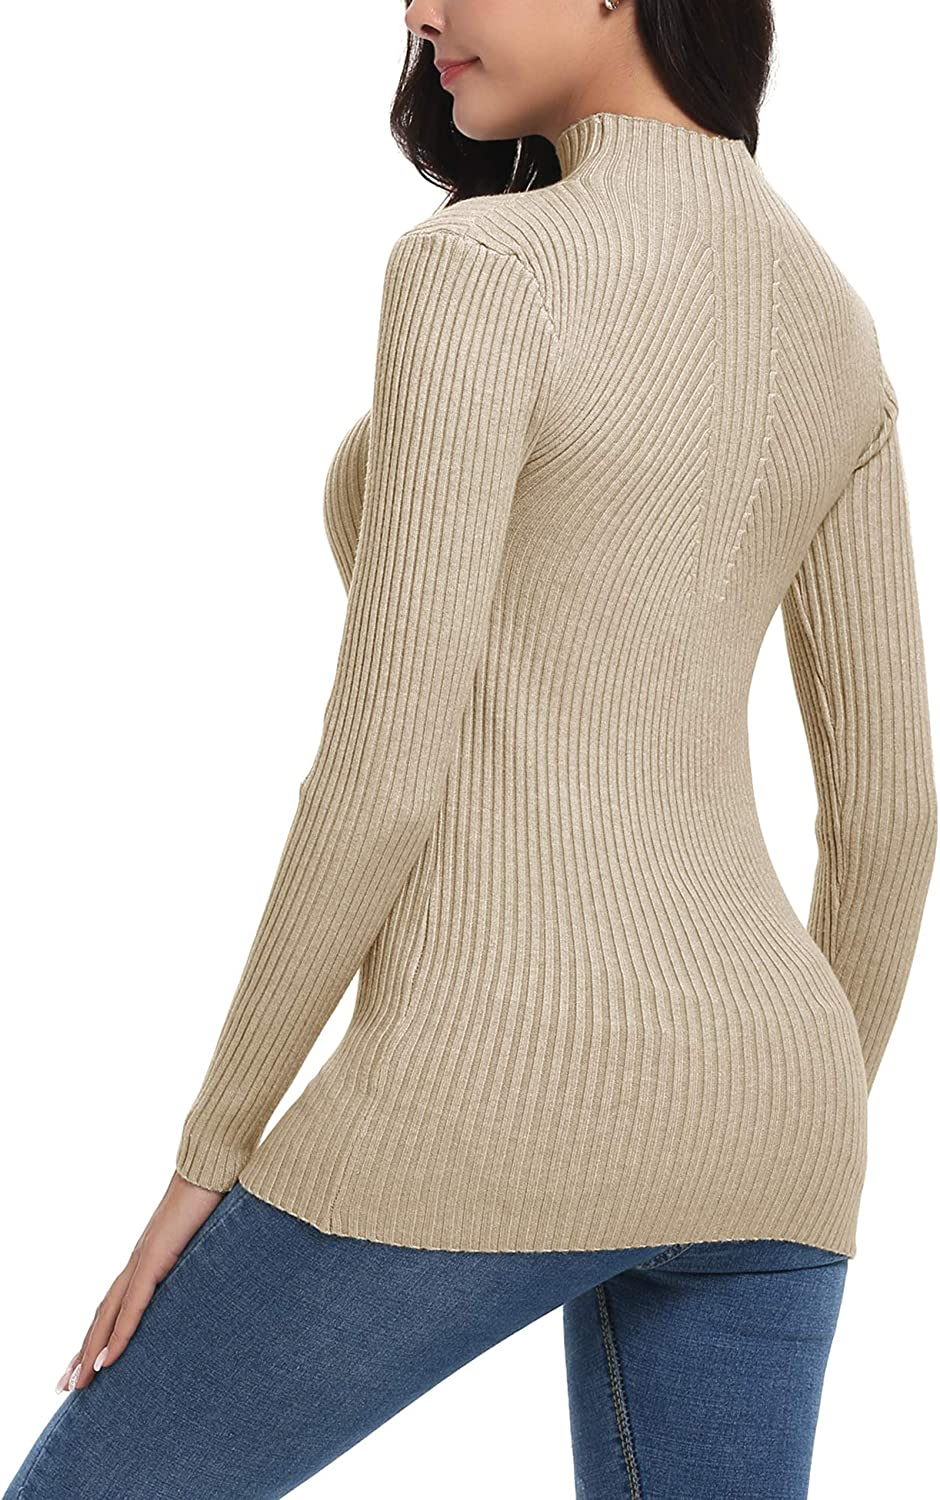 iClosam Women Sweater Turtleneck Knit Pullover Ribbed Mock Neck Sweater